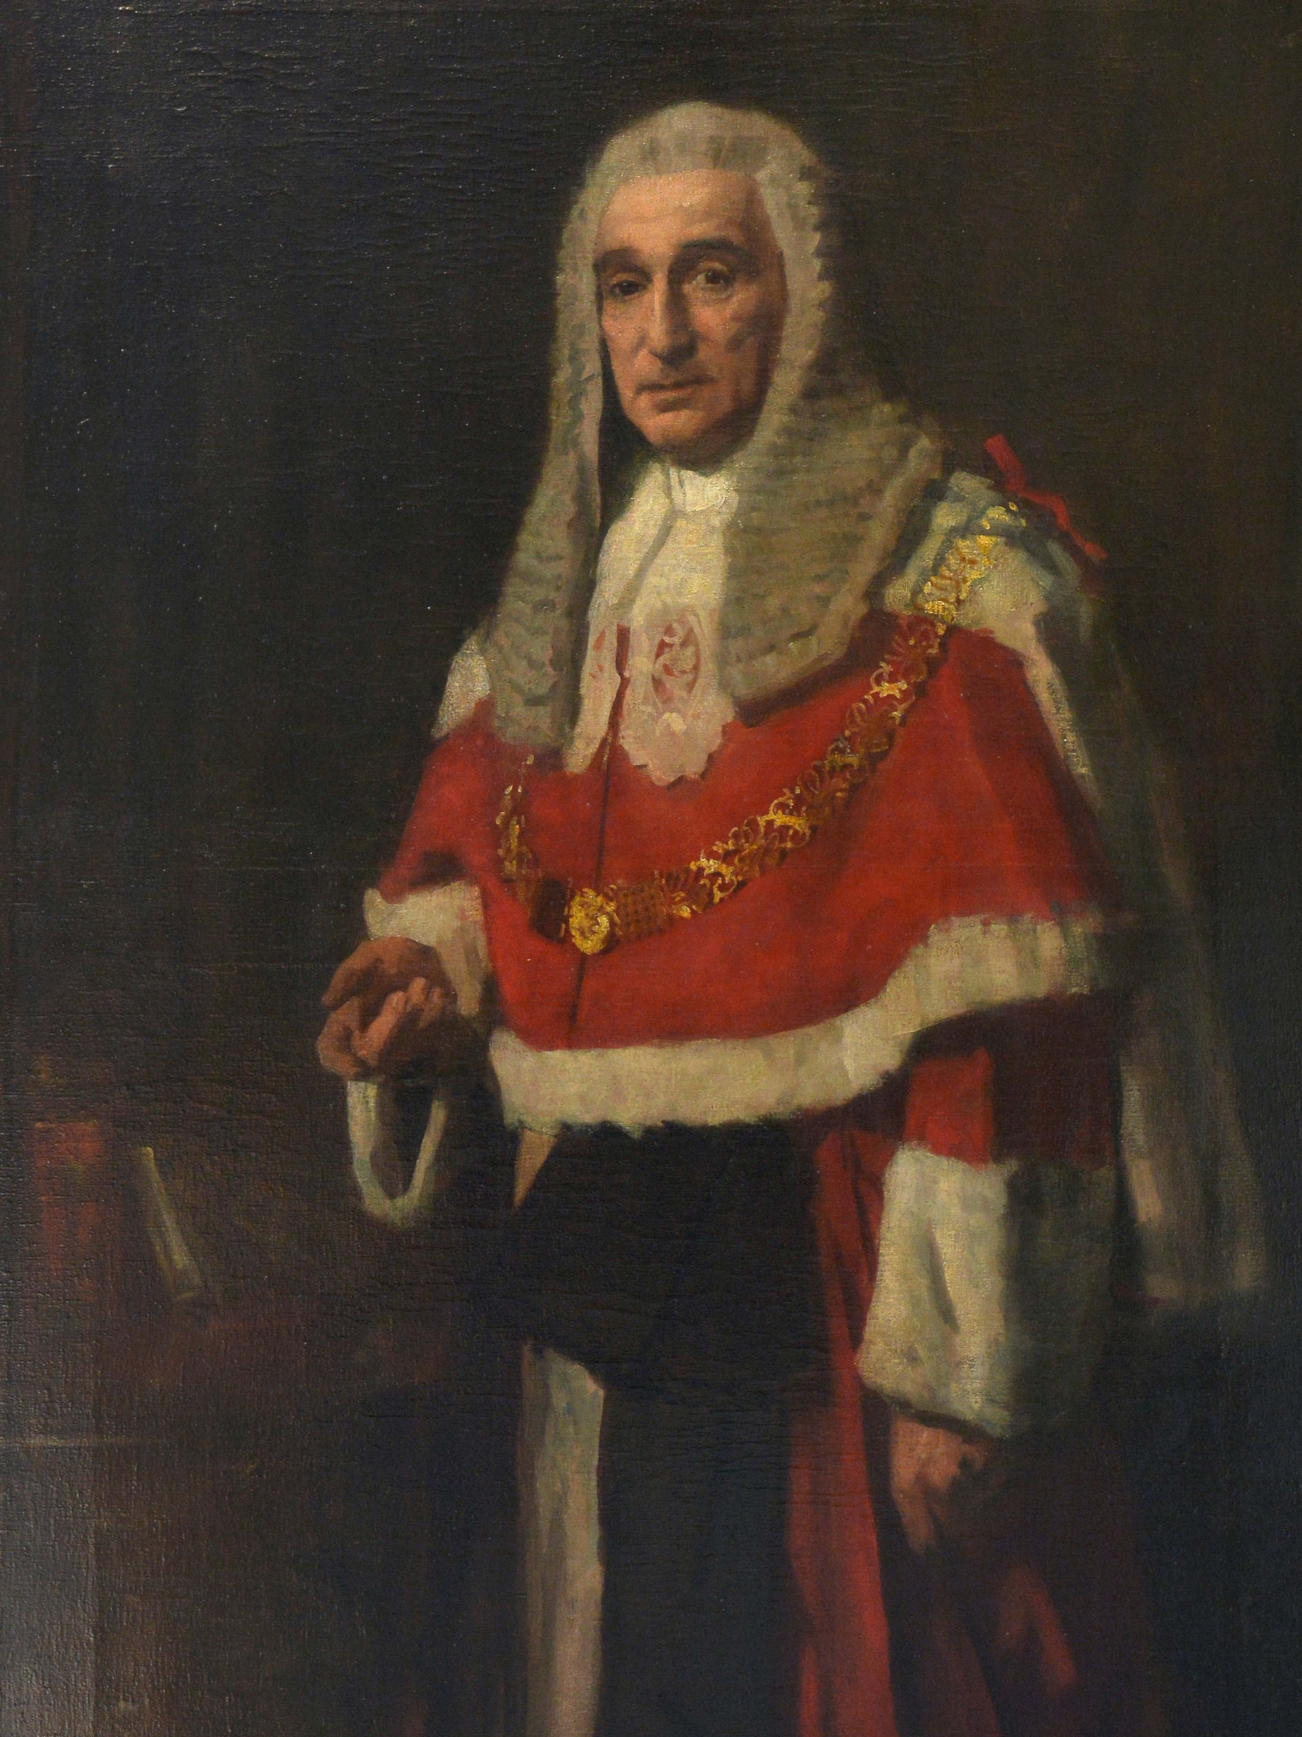 Rufus Isaacs, 1st Marquess of Reading